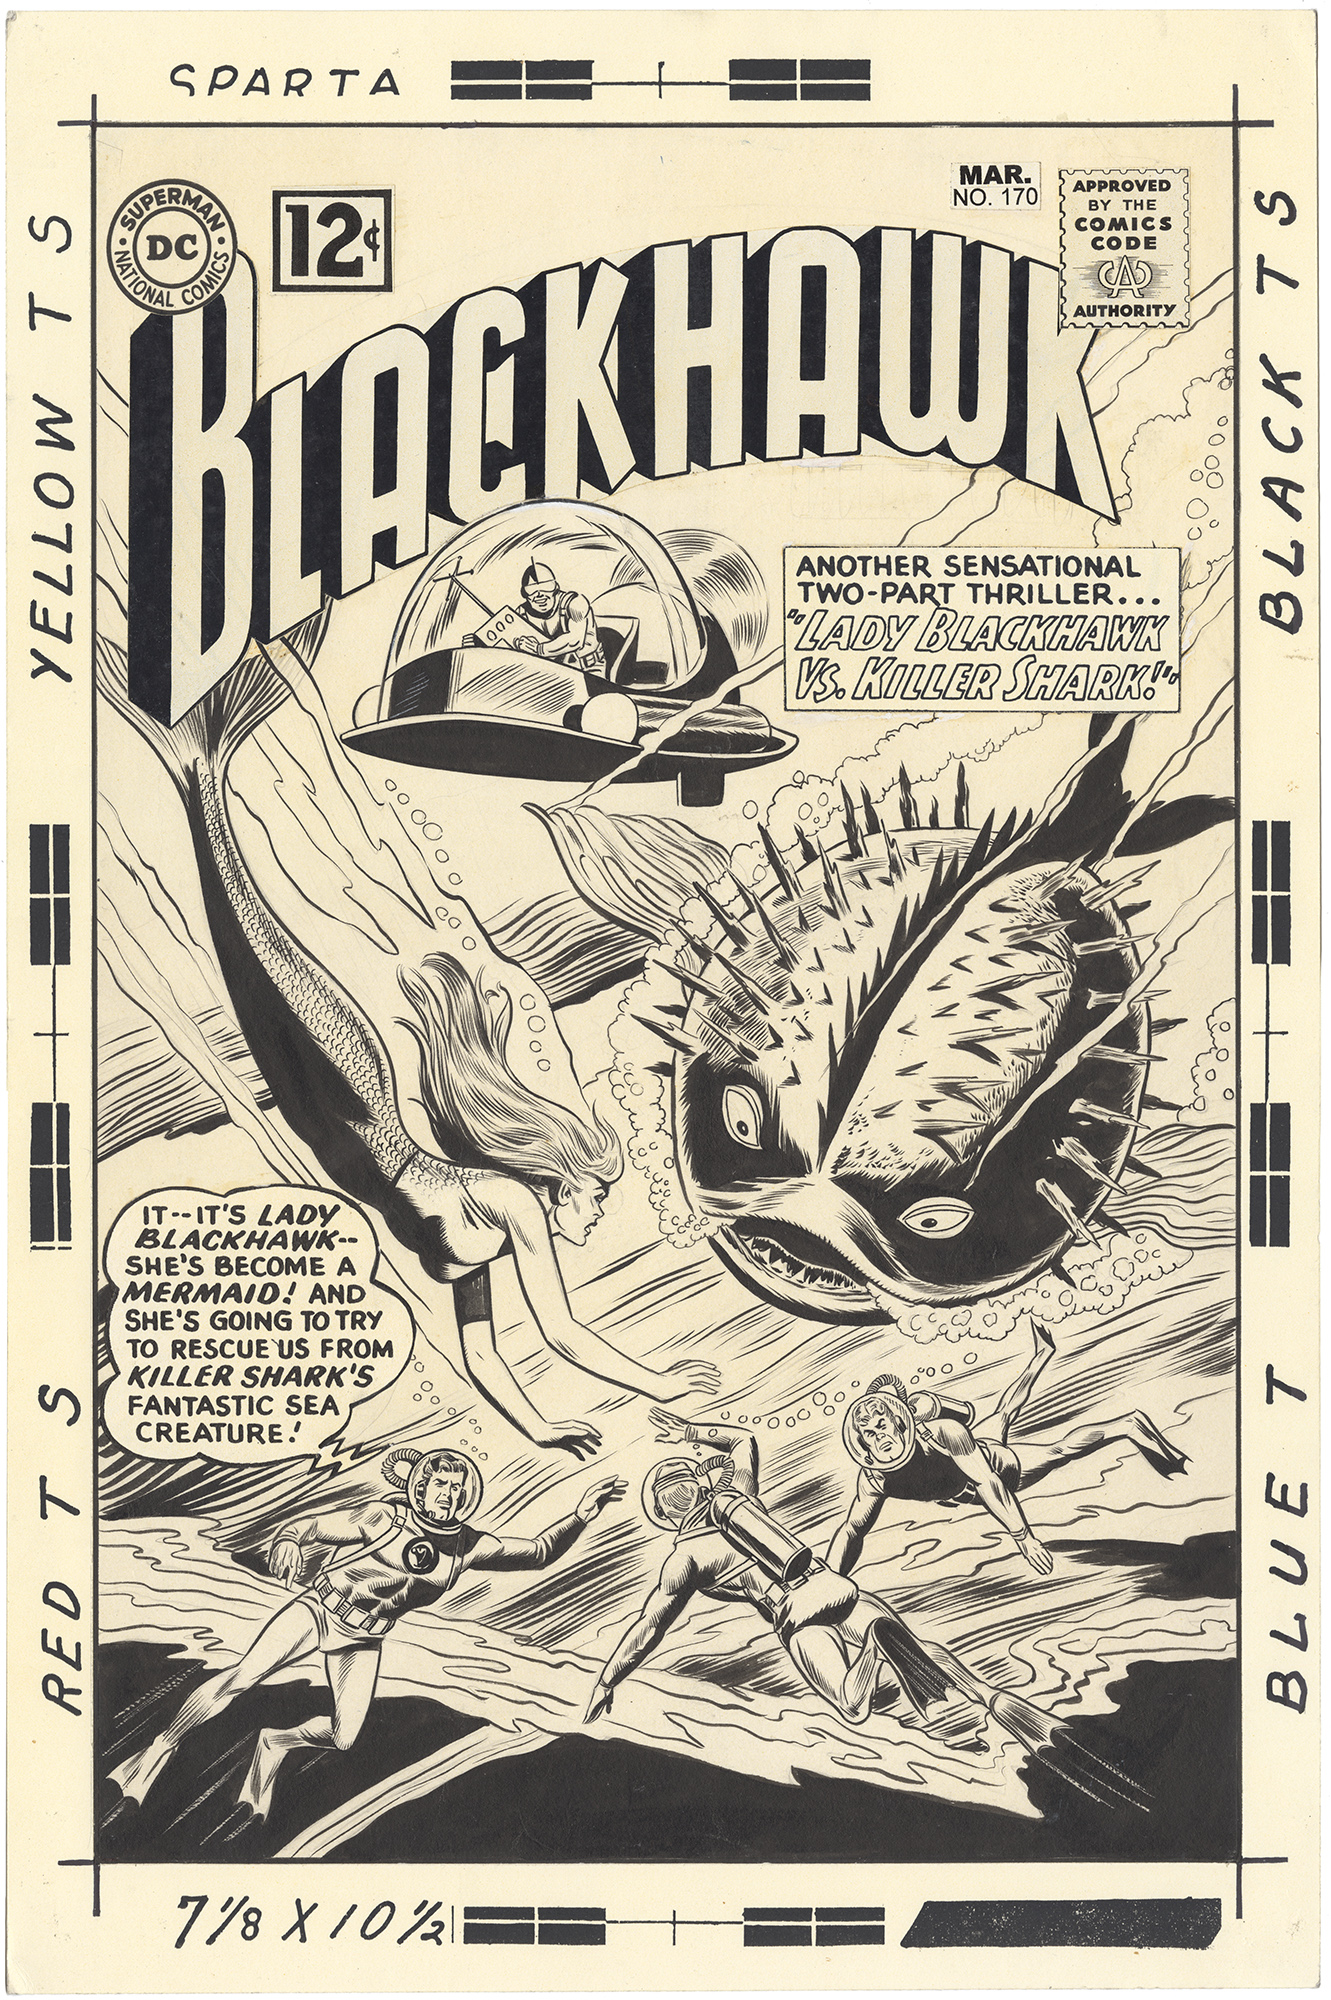 Blackhawk #170 Cover (Large Art)